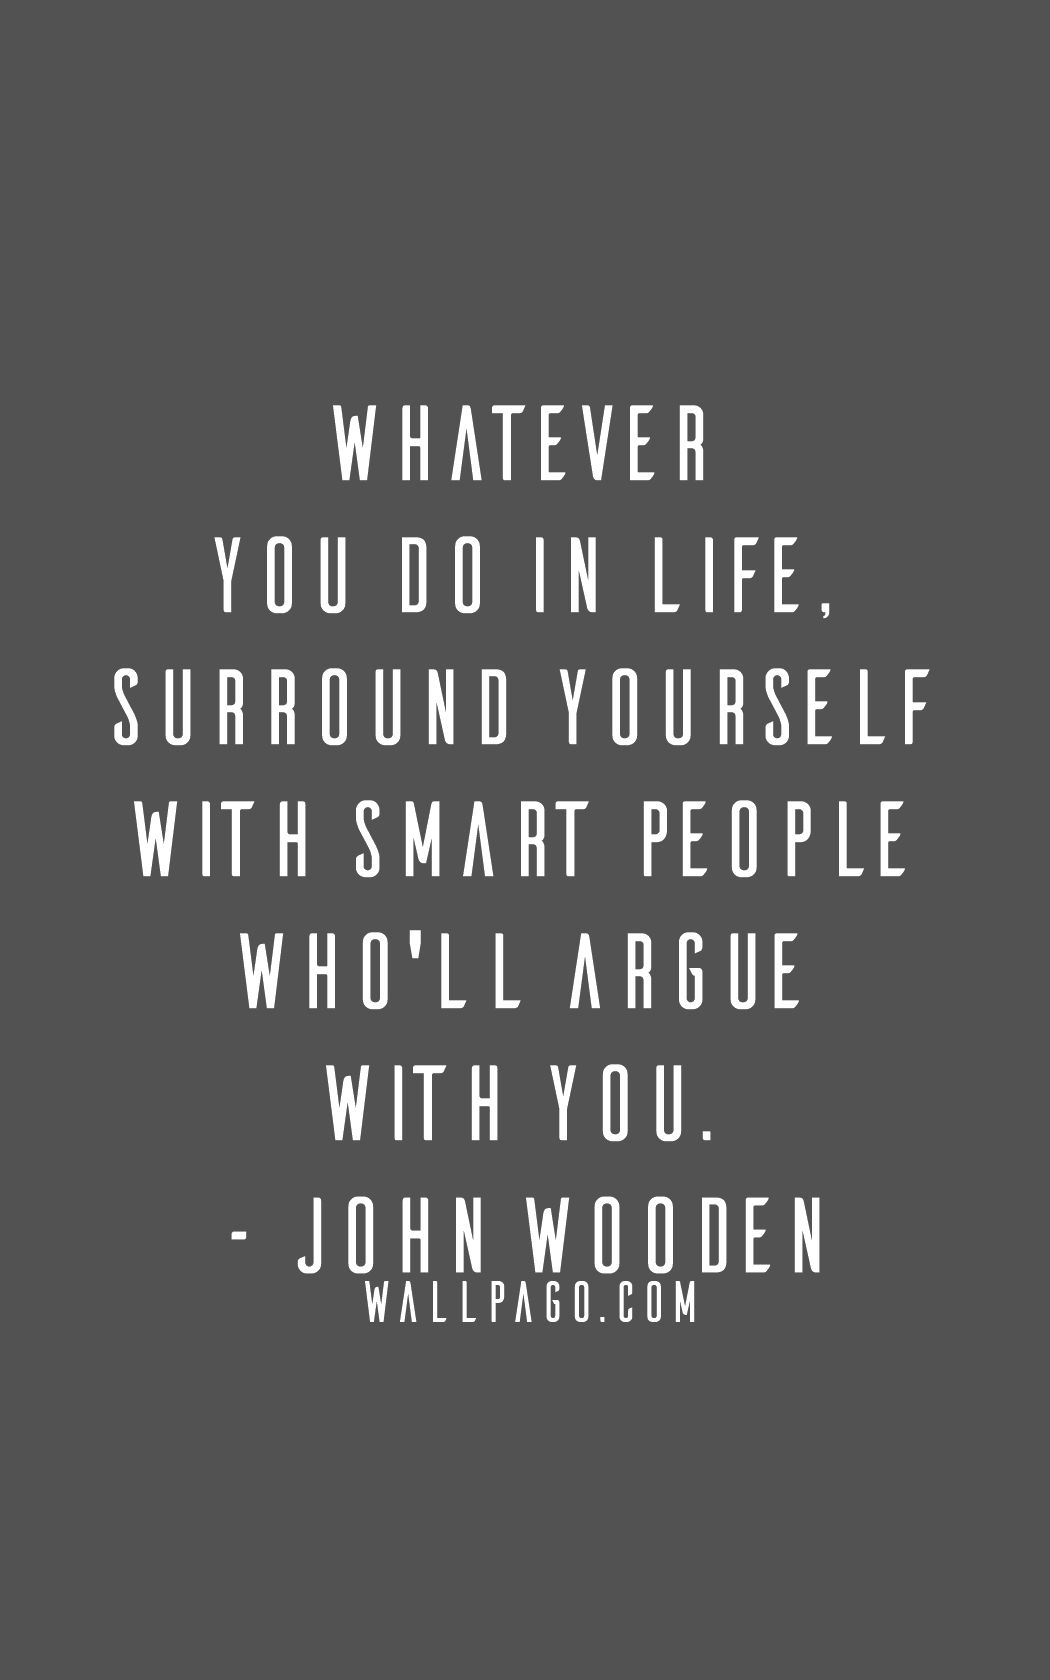 27. Whatever you do in life, surround yourself with smart